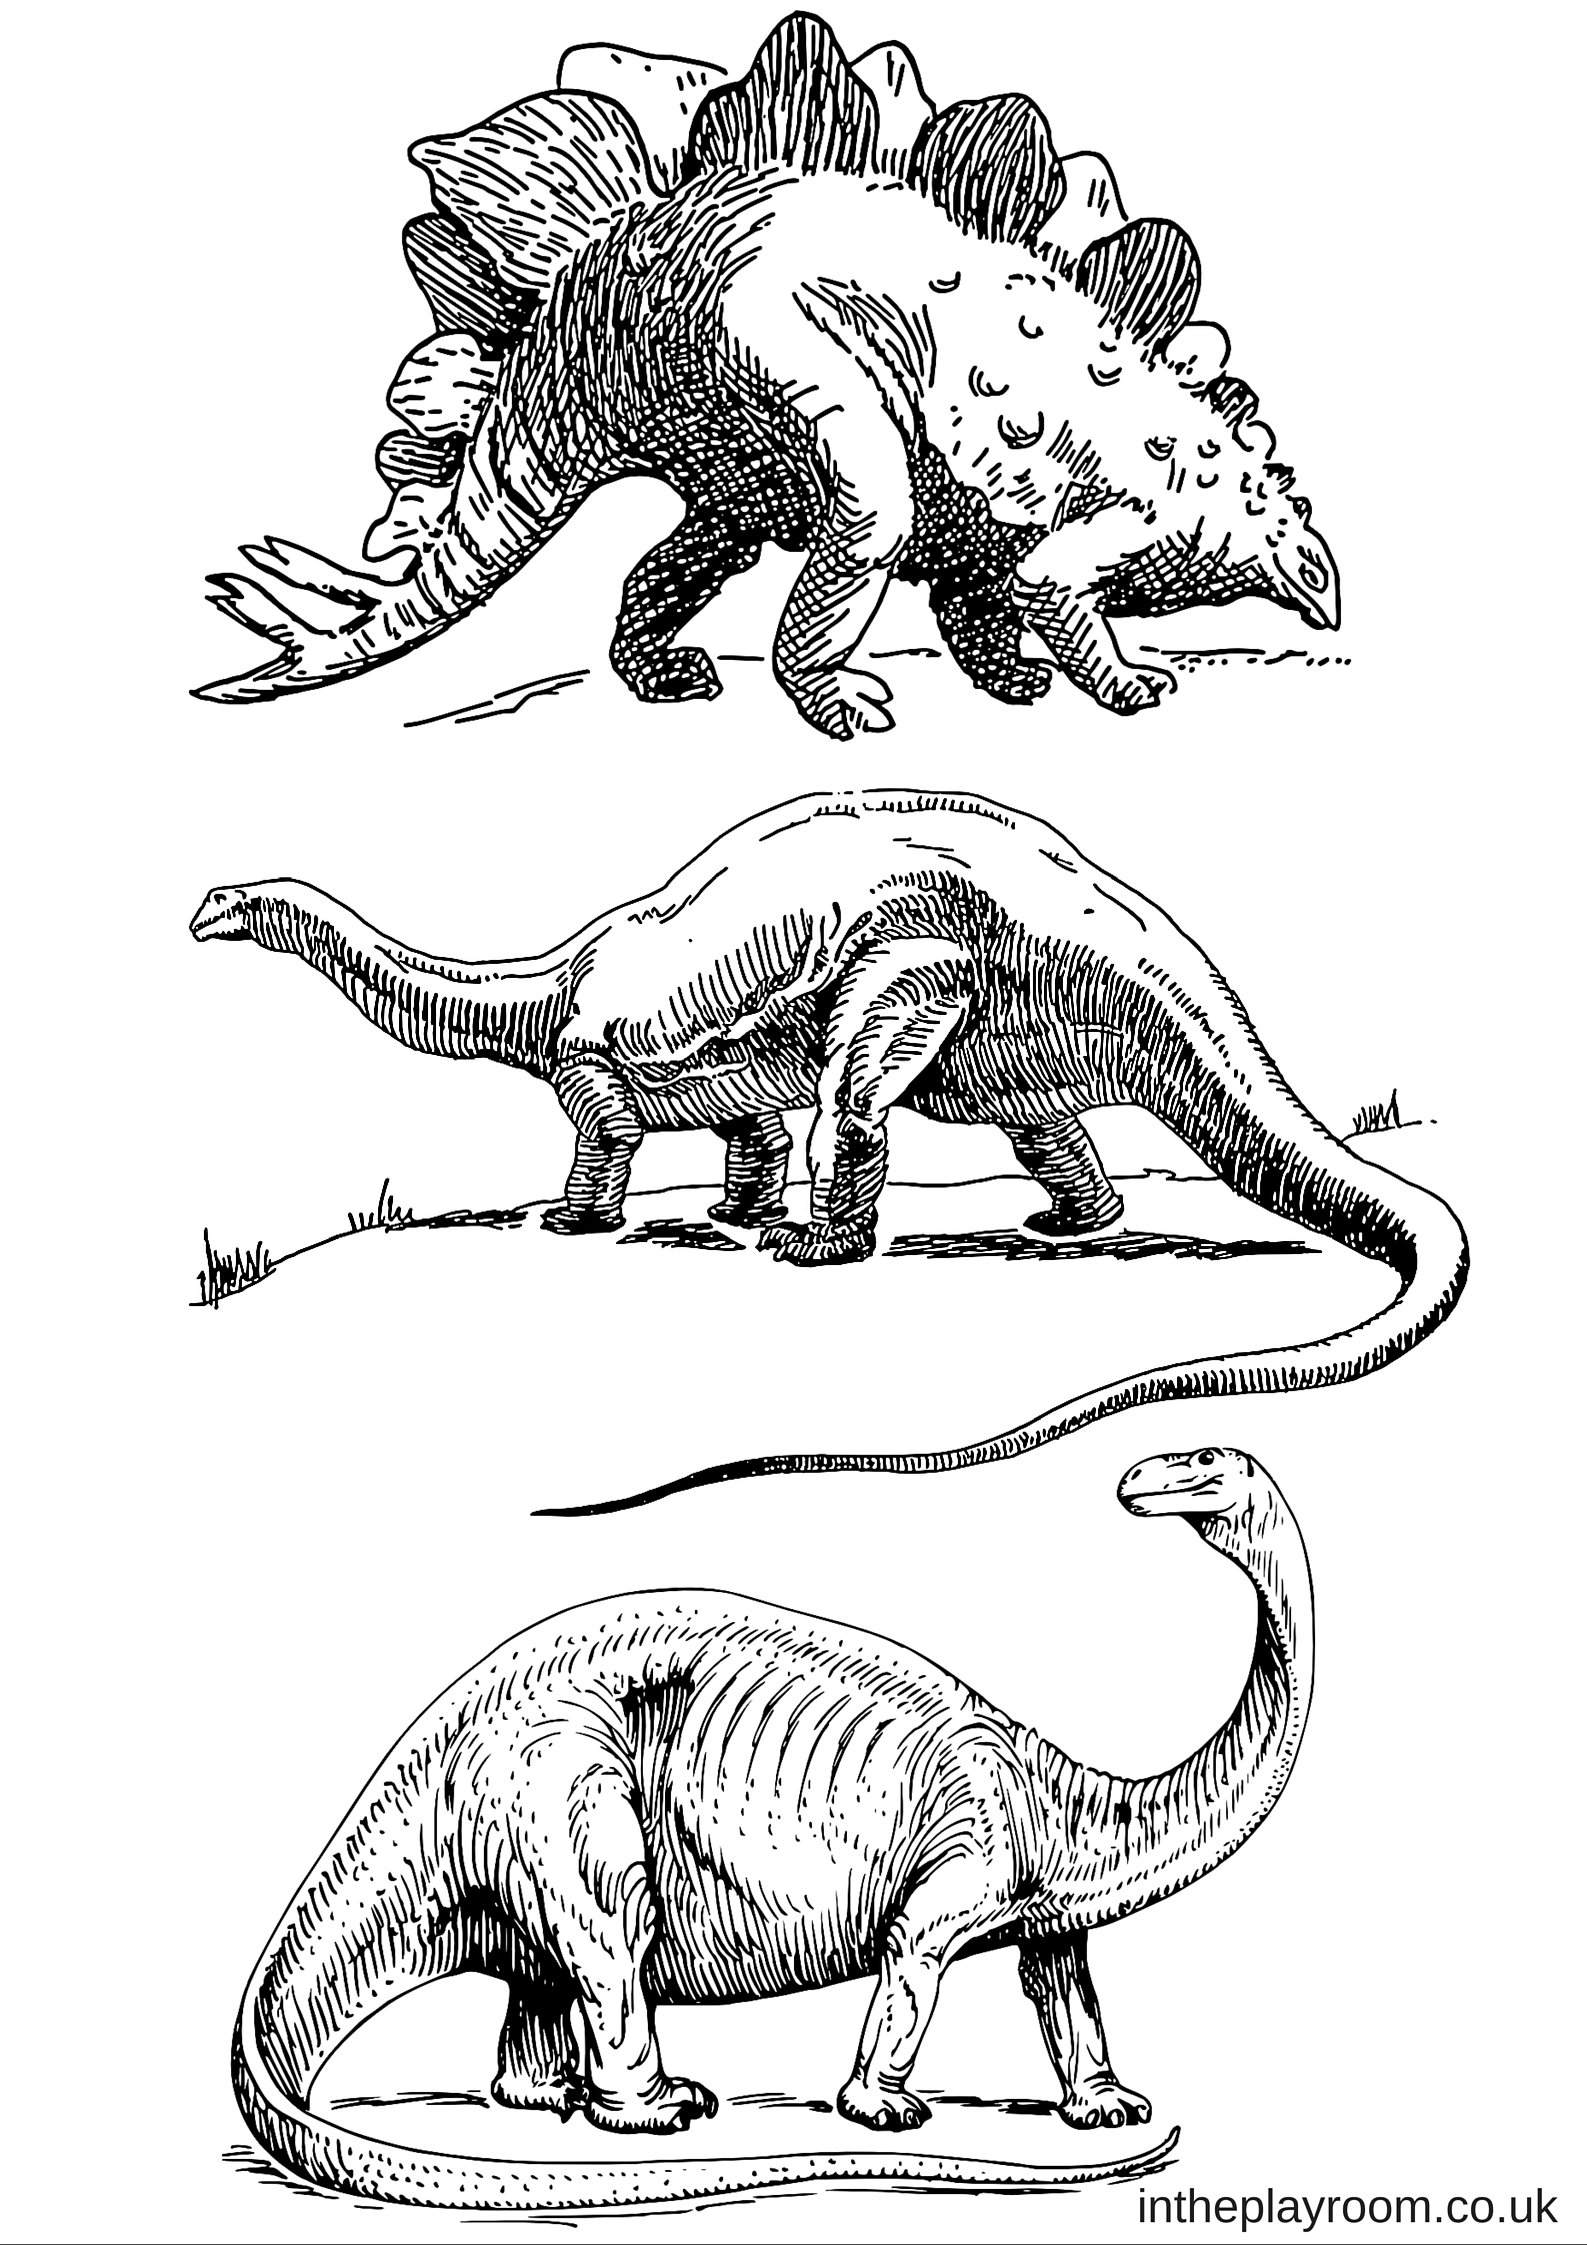 dinosaurs coloring page dinosaur coloring pages for kids coloring dinosaurs page